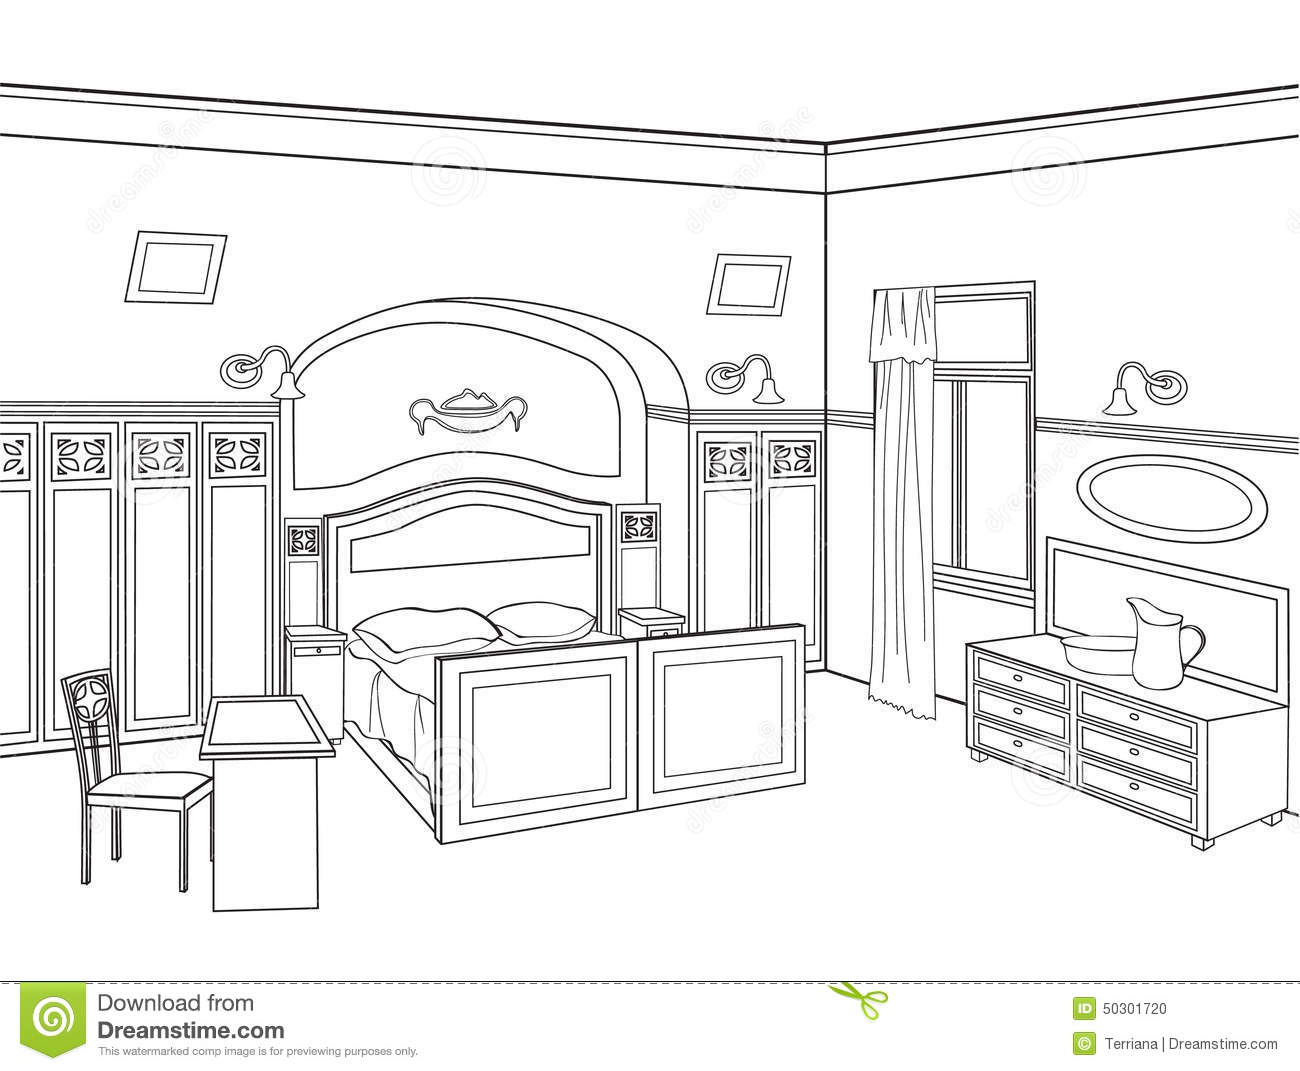 . Bedroom Furniture  Room Interior In Retro Style Illustration